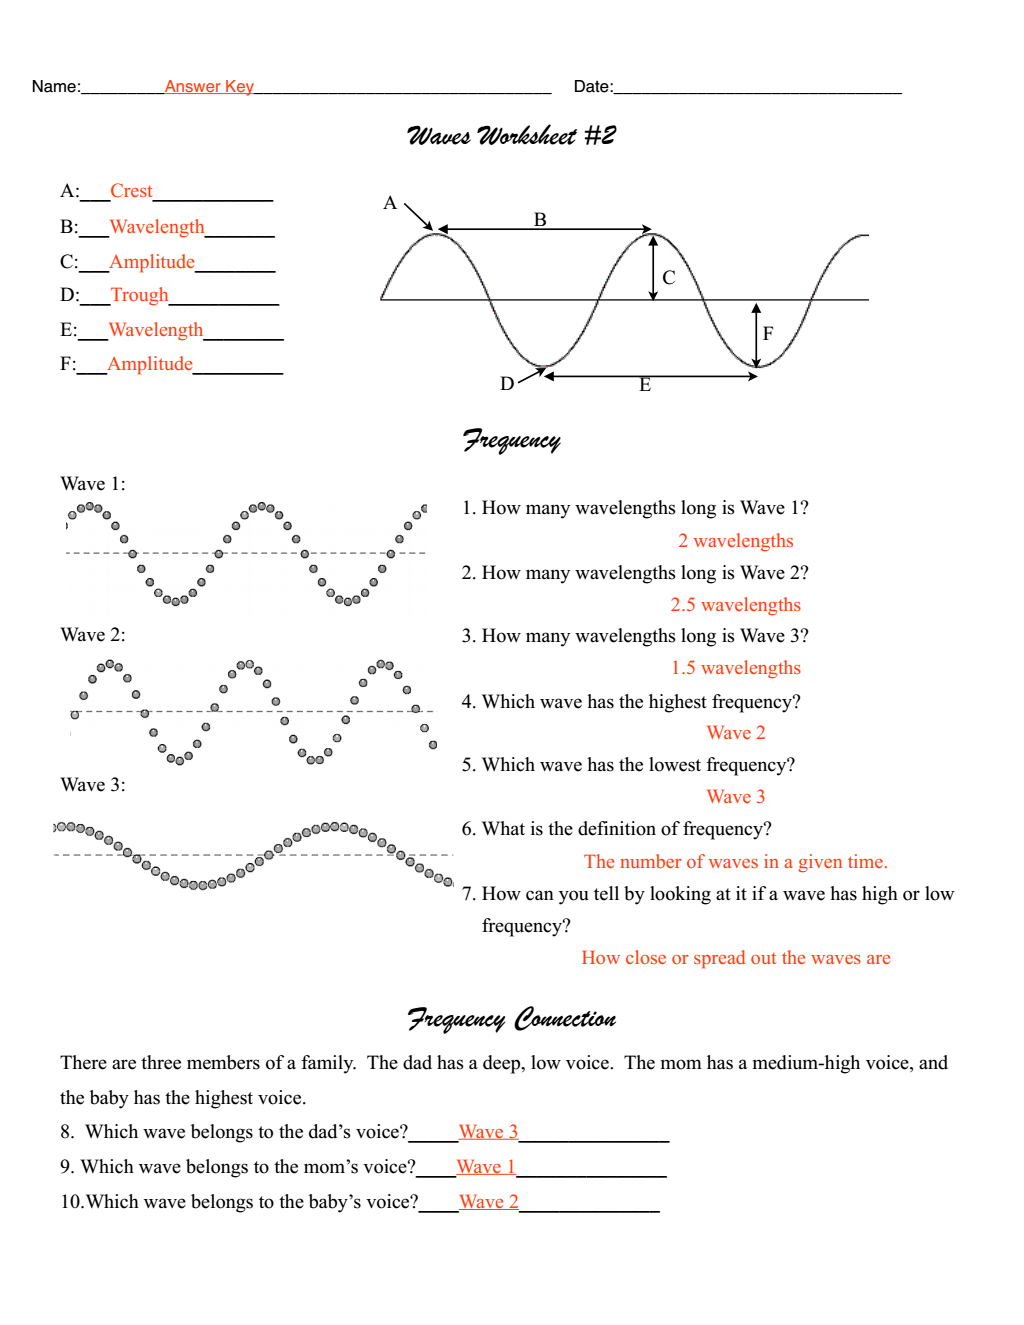 Waves Worksheet 2 Amplitude - Thekidsworksheet